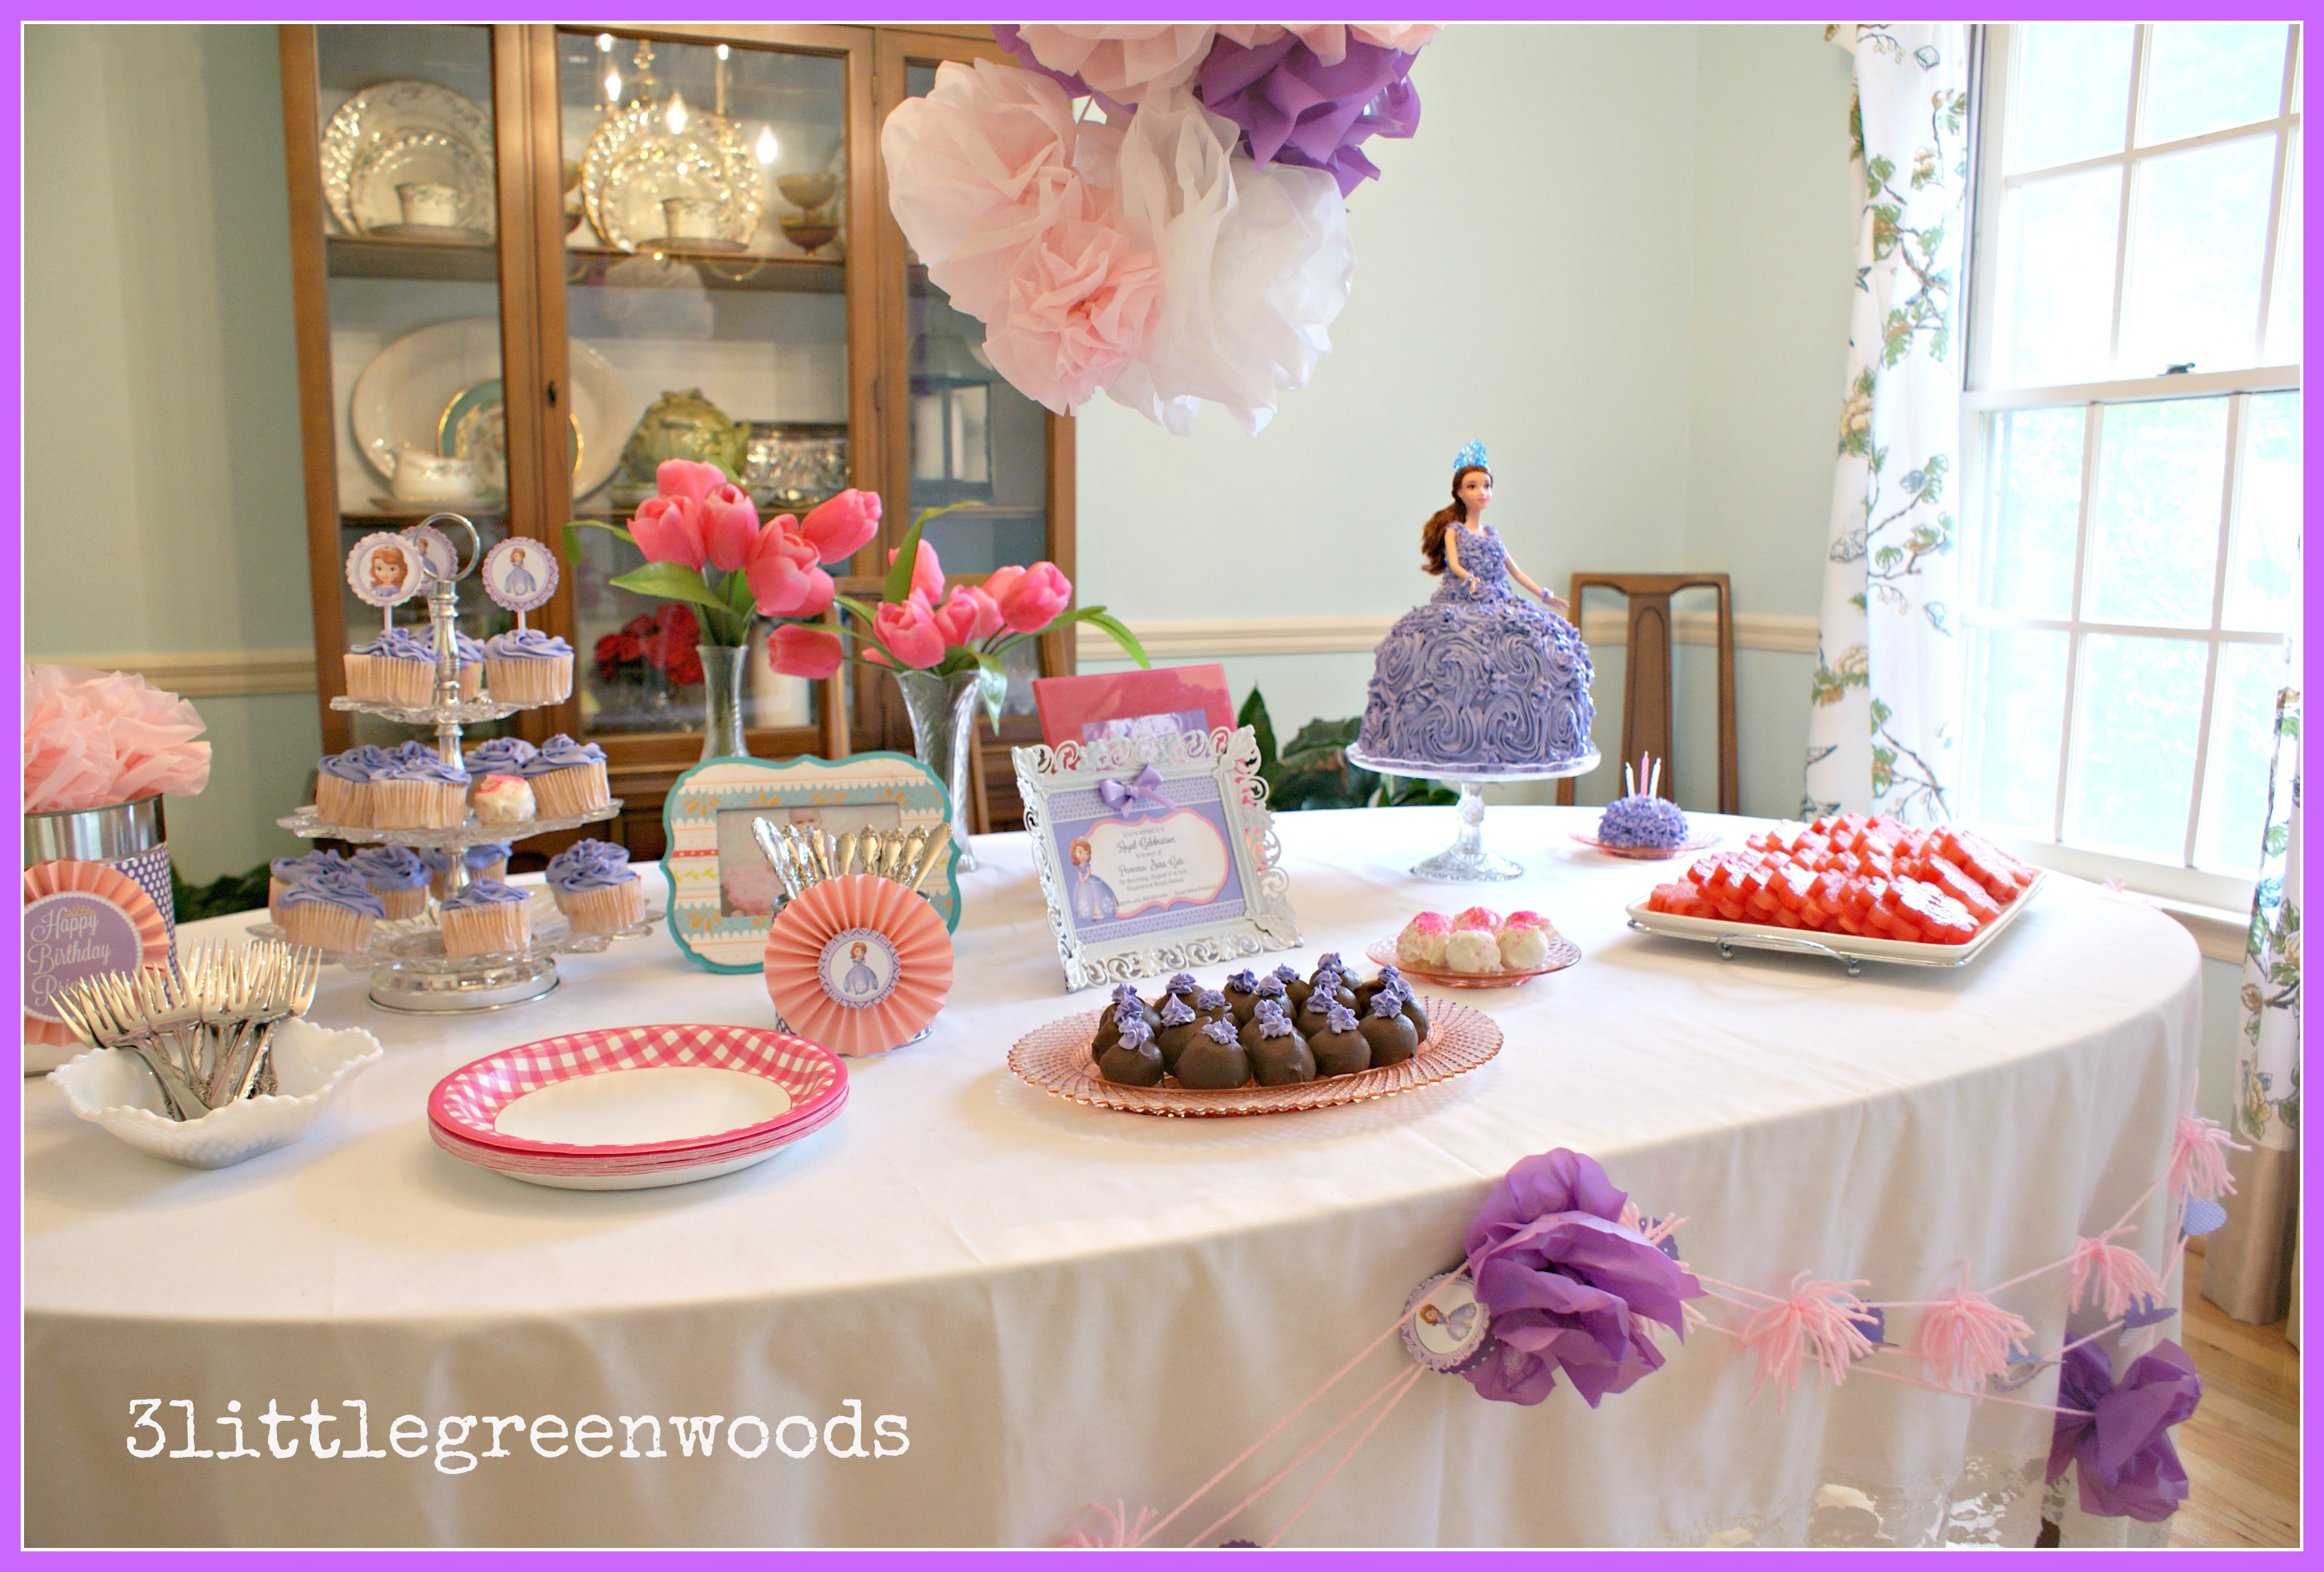 Sofia The First Princess Party On A Budget 3littlegreenwoods